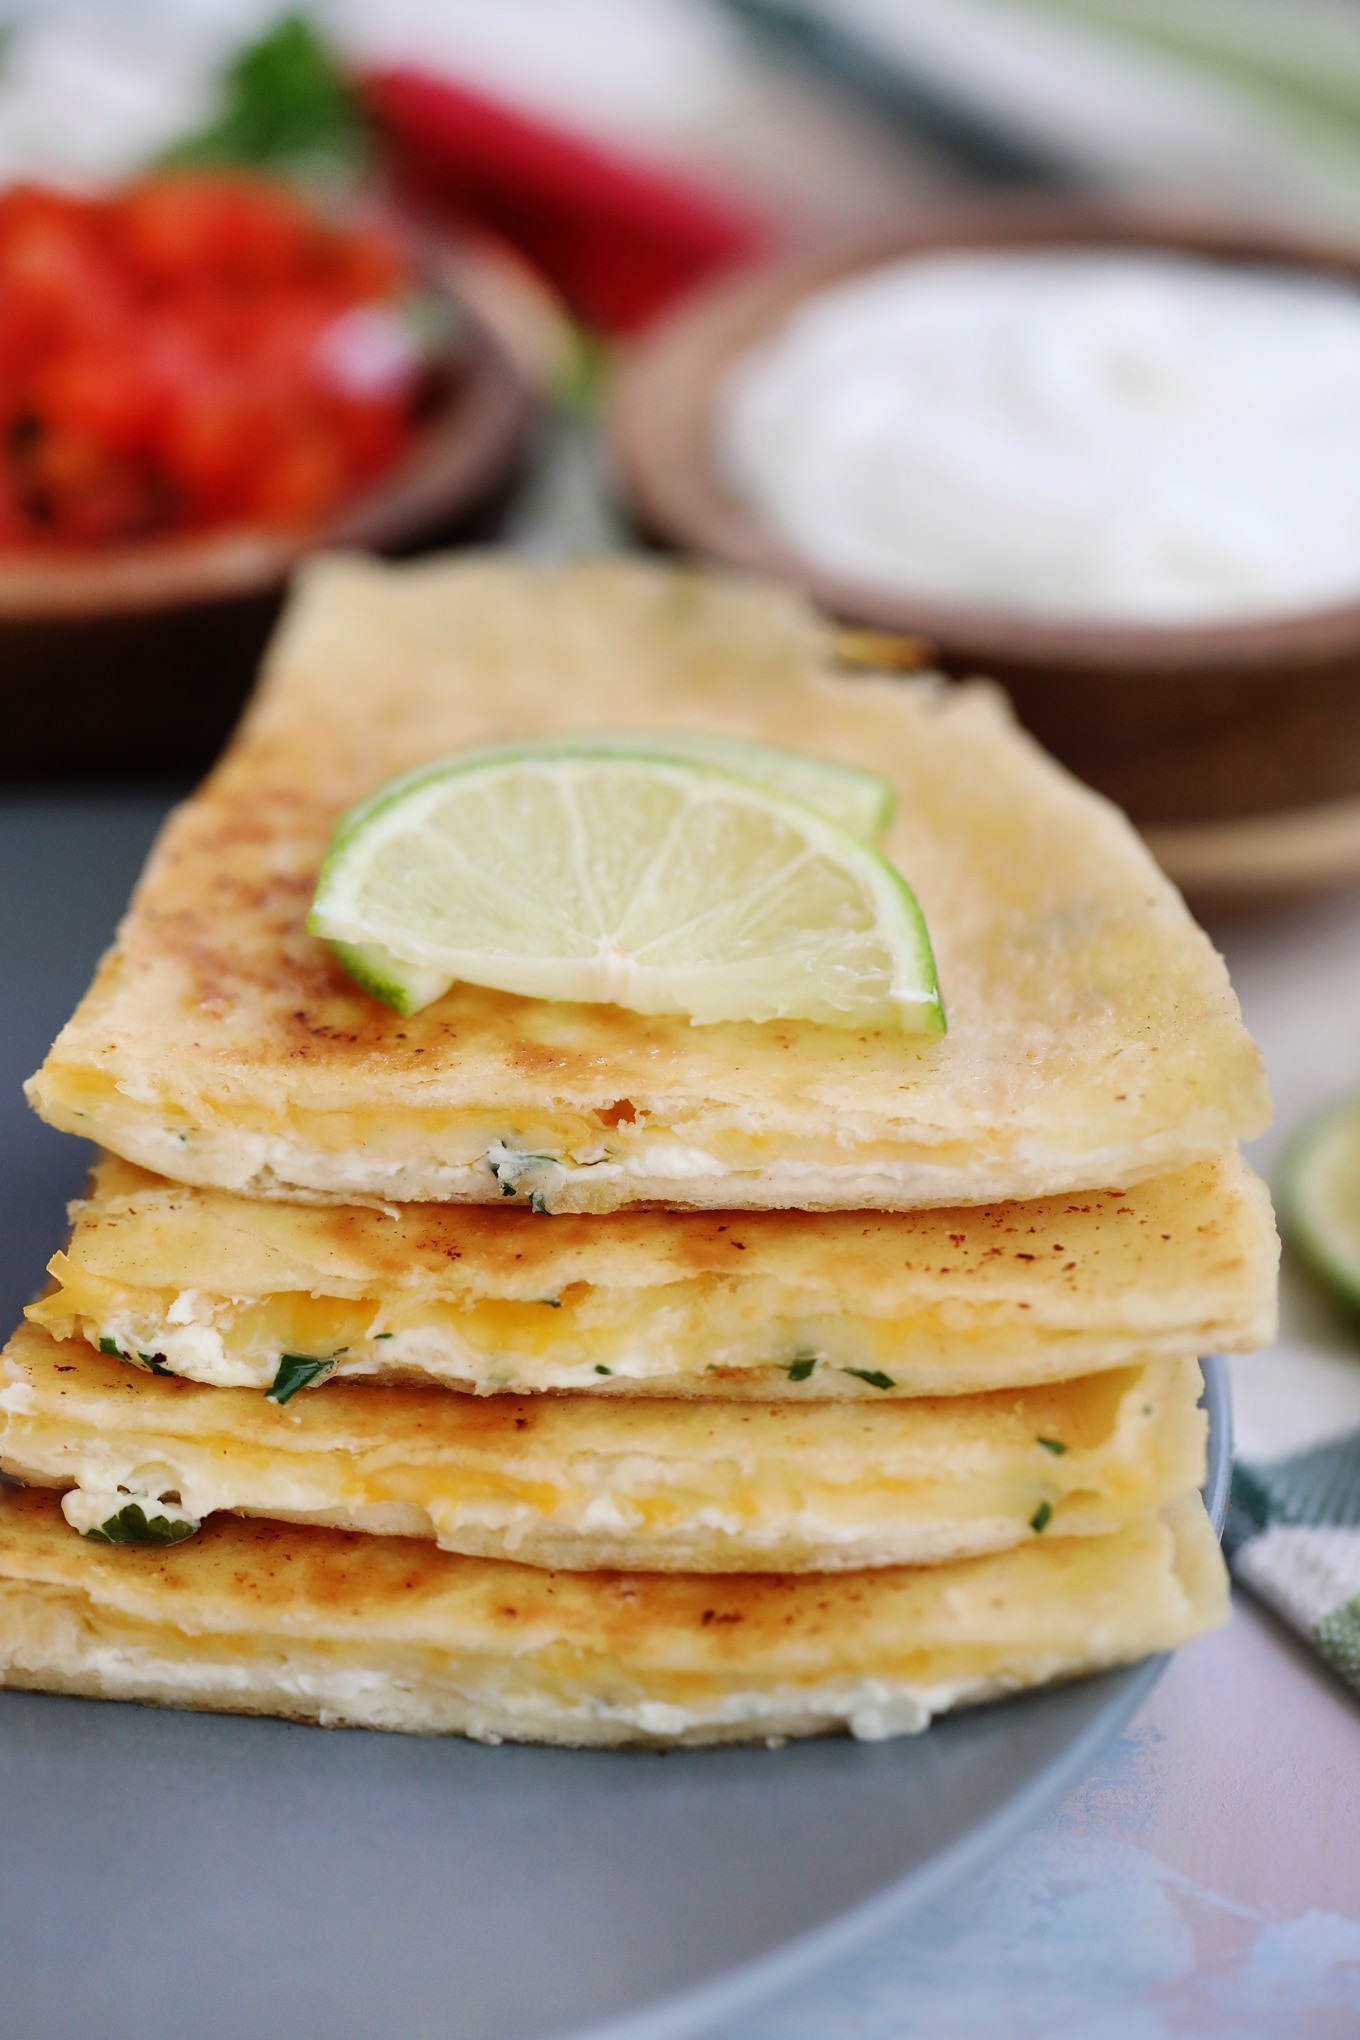 Cheese Quesadilla Recipe Video Sweet And Savory Meals